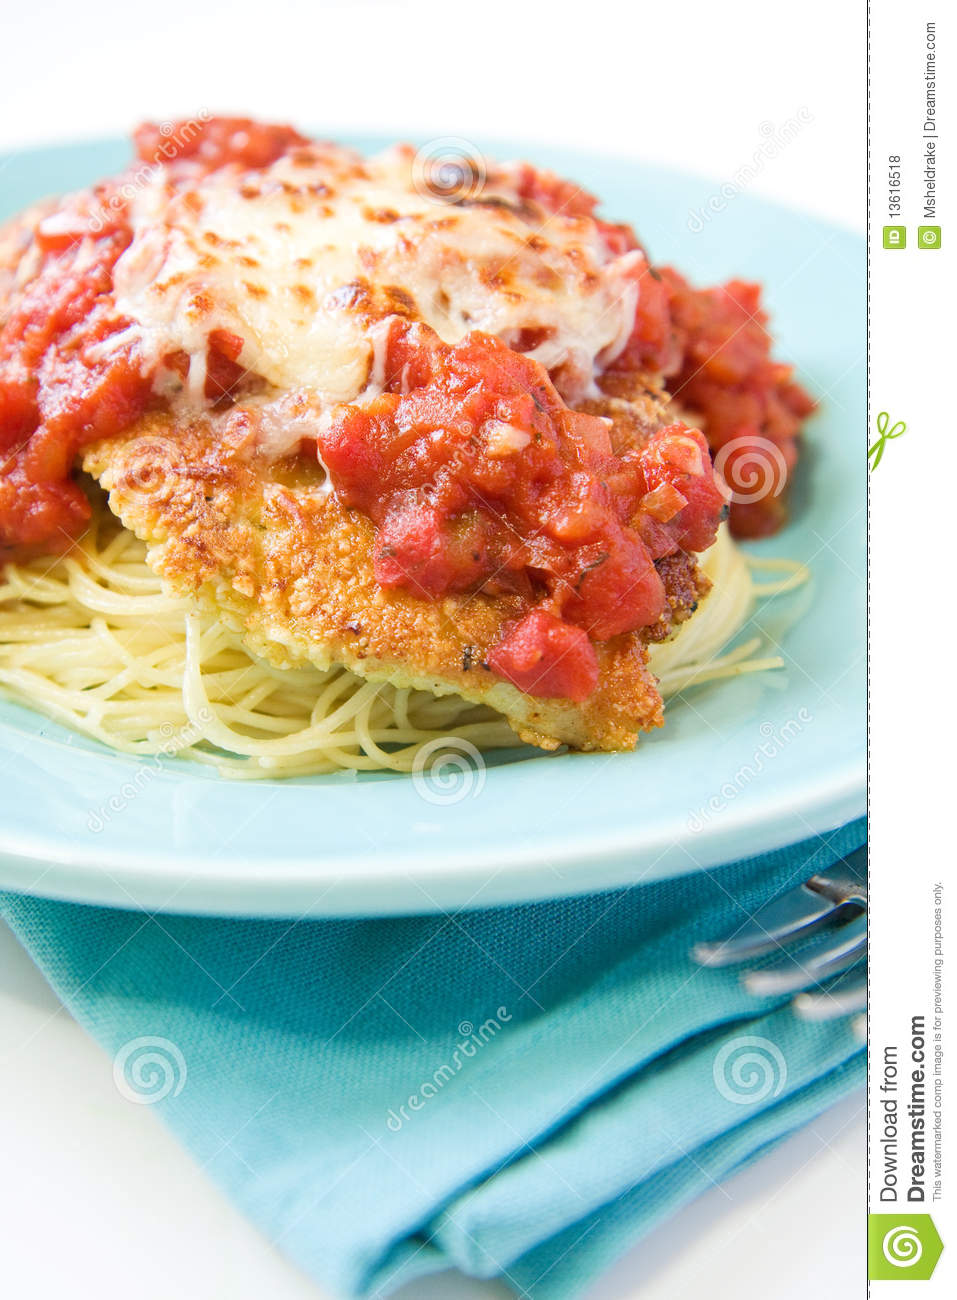 Chicken parmesan royalty free stock photos image 13616518 for Chicken chicken parmesan desiigner